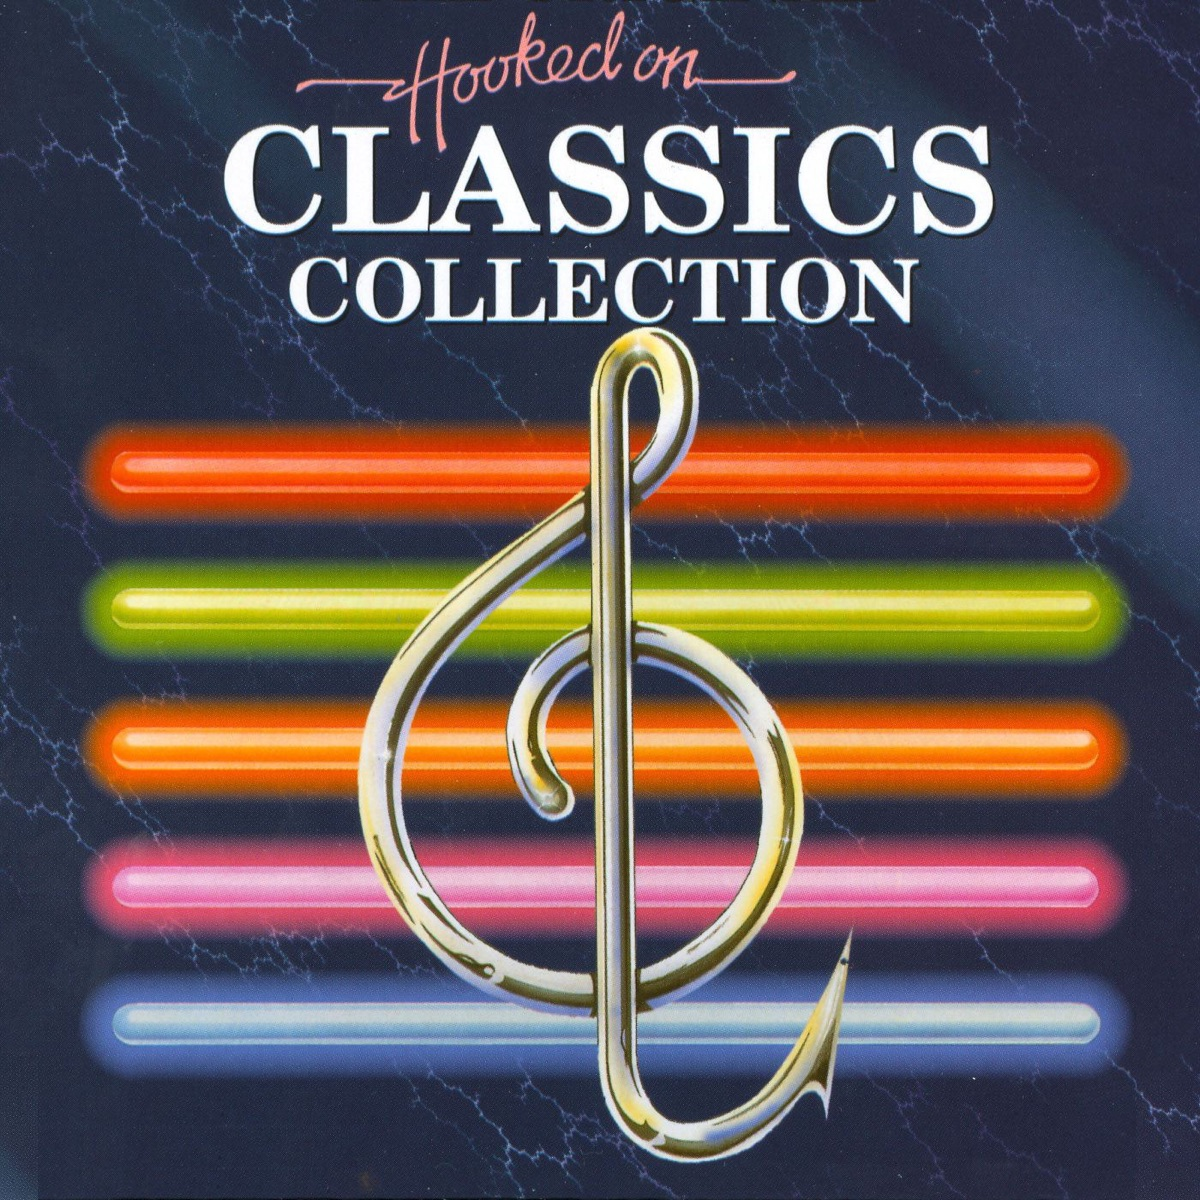 The Royal Philharmonic Orchestra Goes To The Bathroom: Hooked On Classics Collection Album Cover By Royal